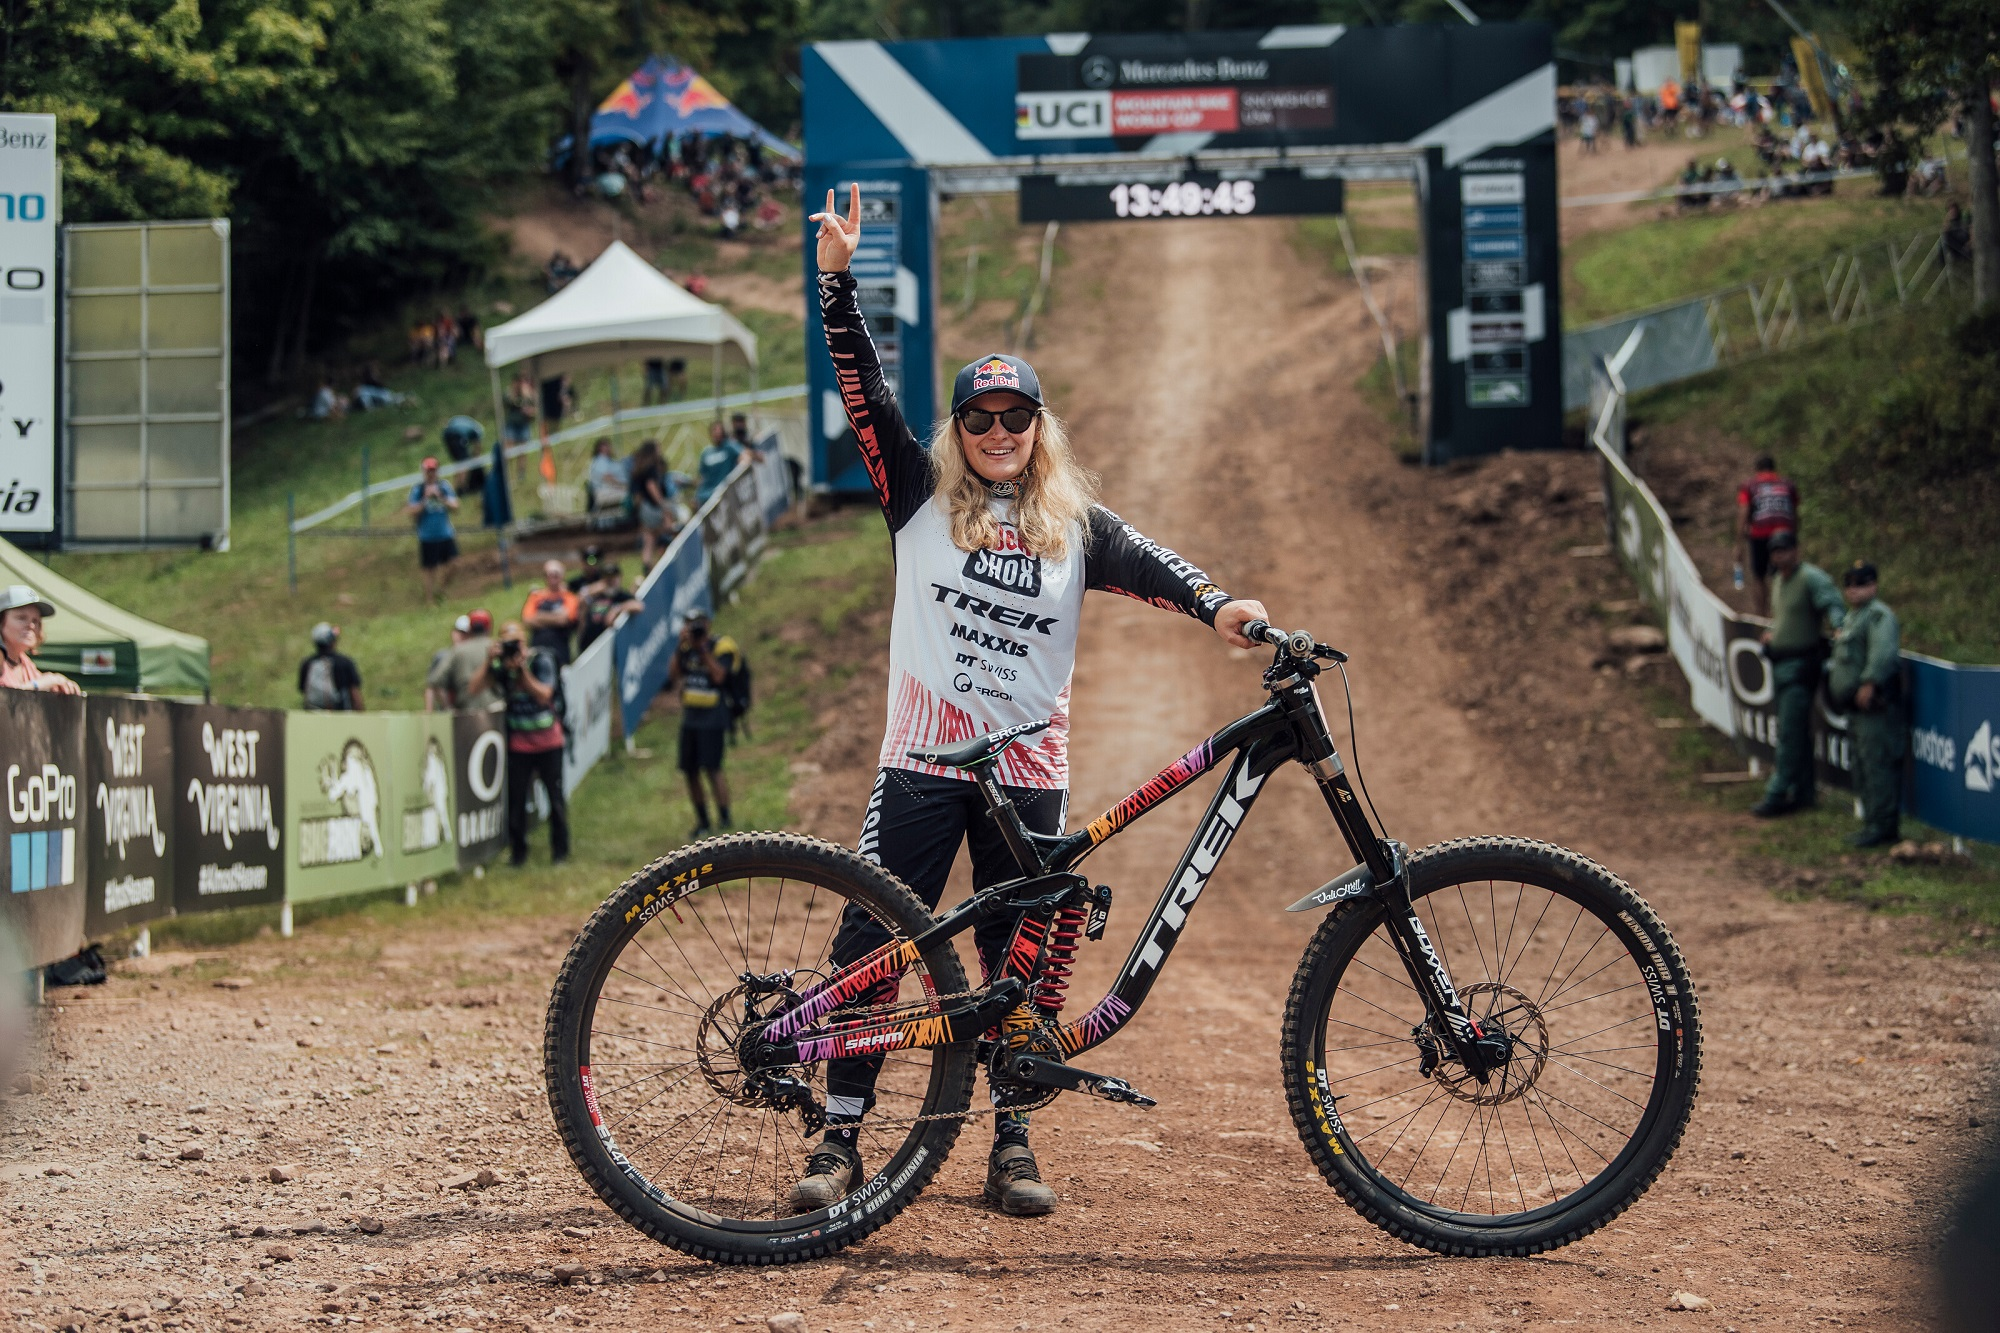 Vali Holl performs at UCI DH World Cup in Snowshoe, USA on Sep. 18, 2021; (photo/Bartek Wolinski, Red Bull Content Pool)